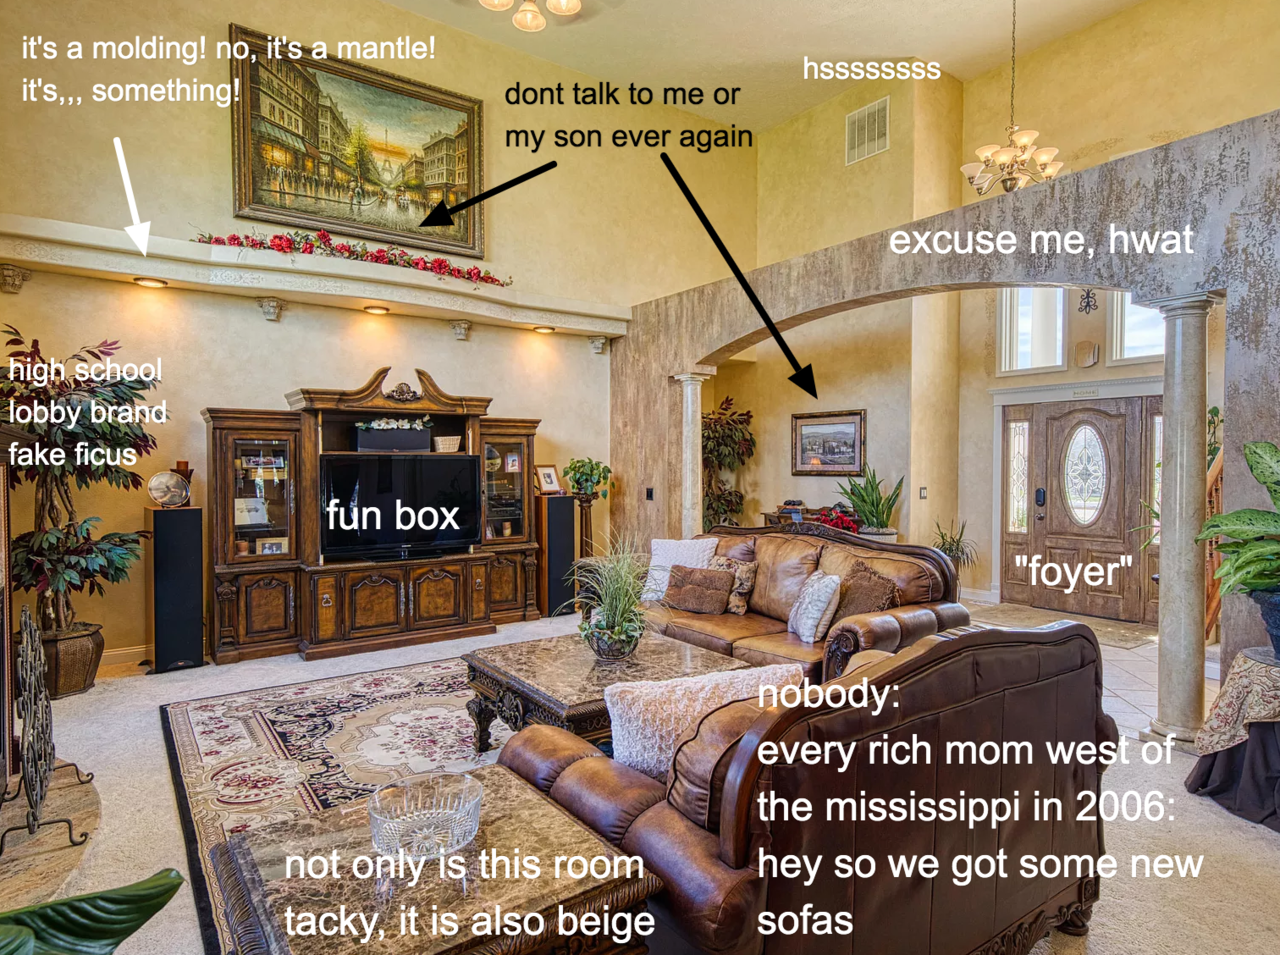 McMansion Hell: the Campbell County, Wyoming edition